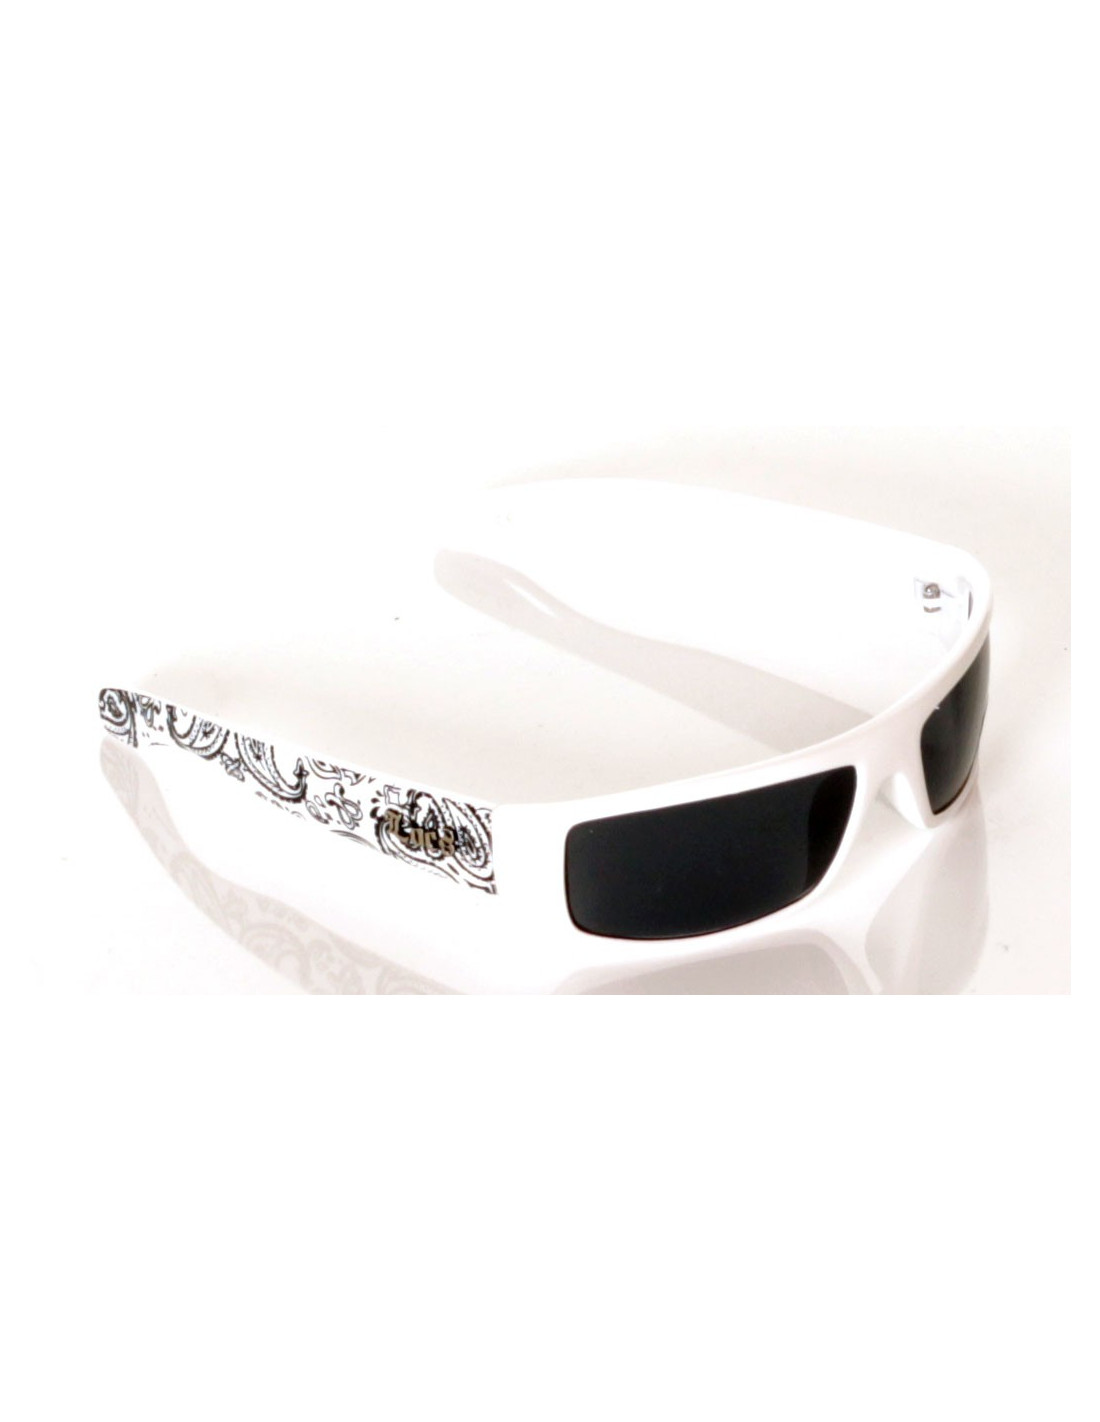 Locs Sunglasses White paisley black